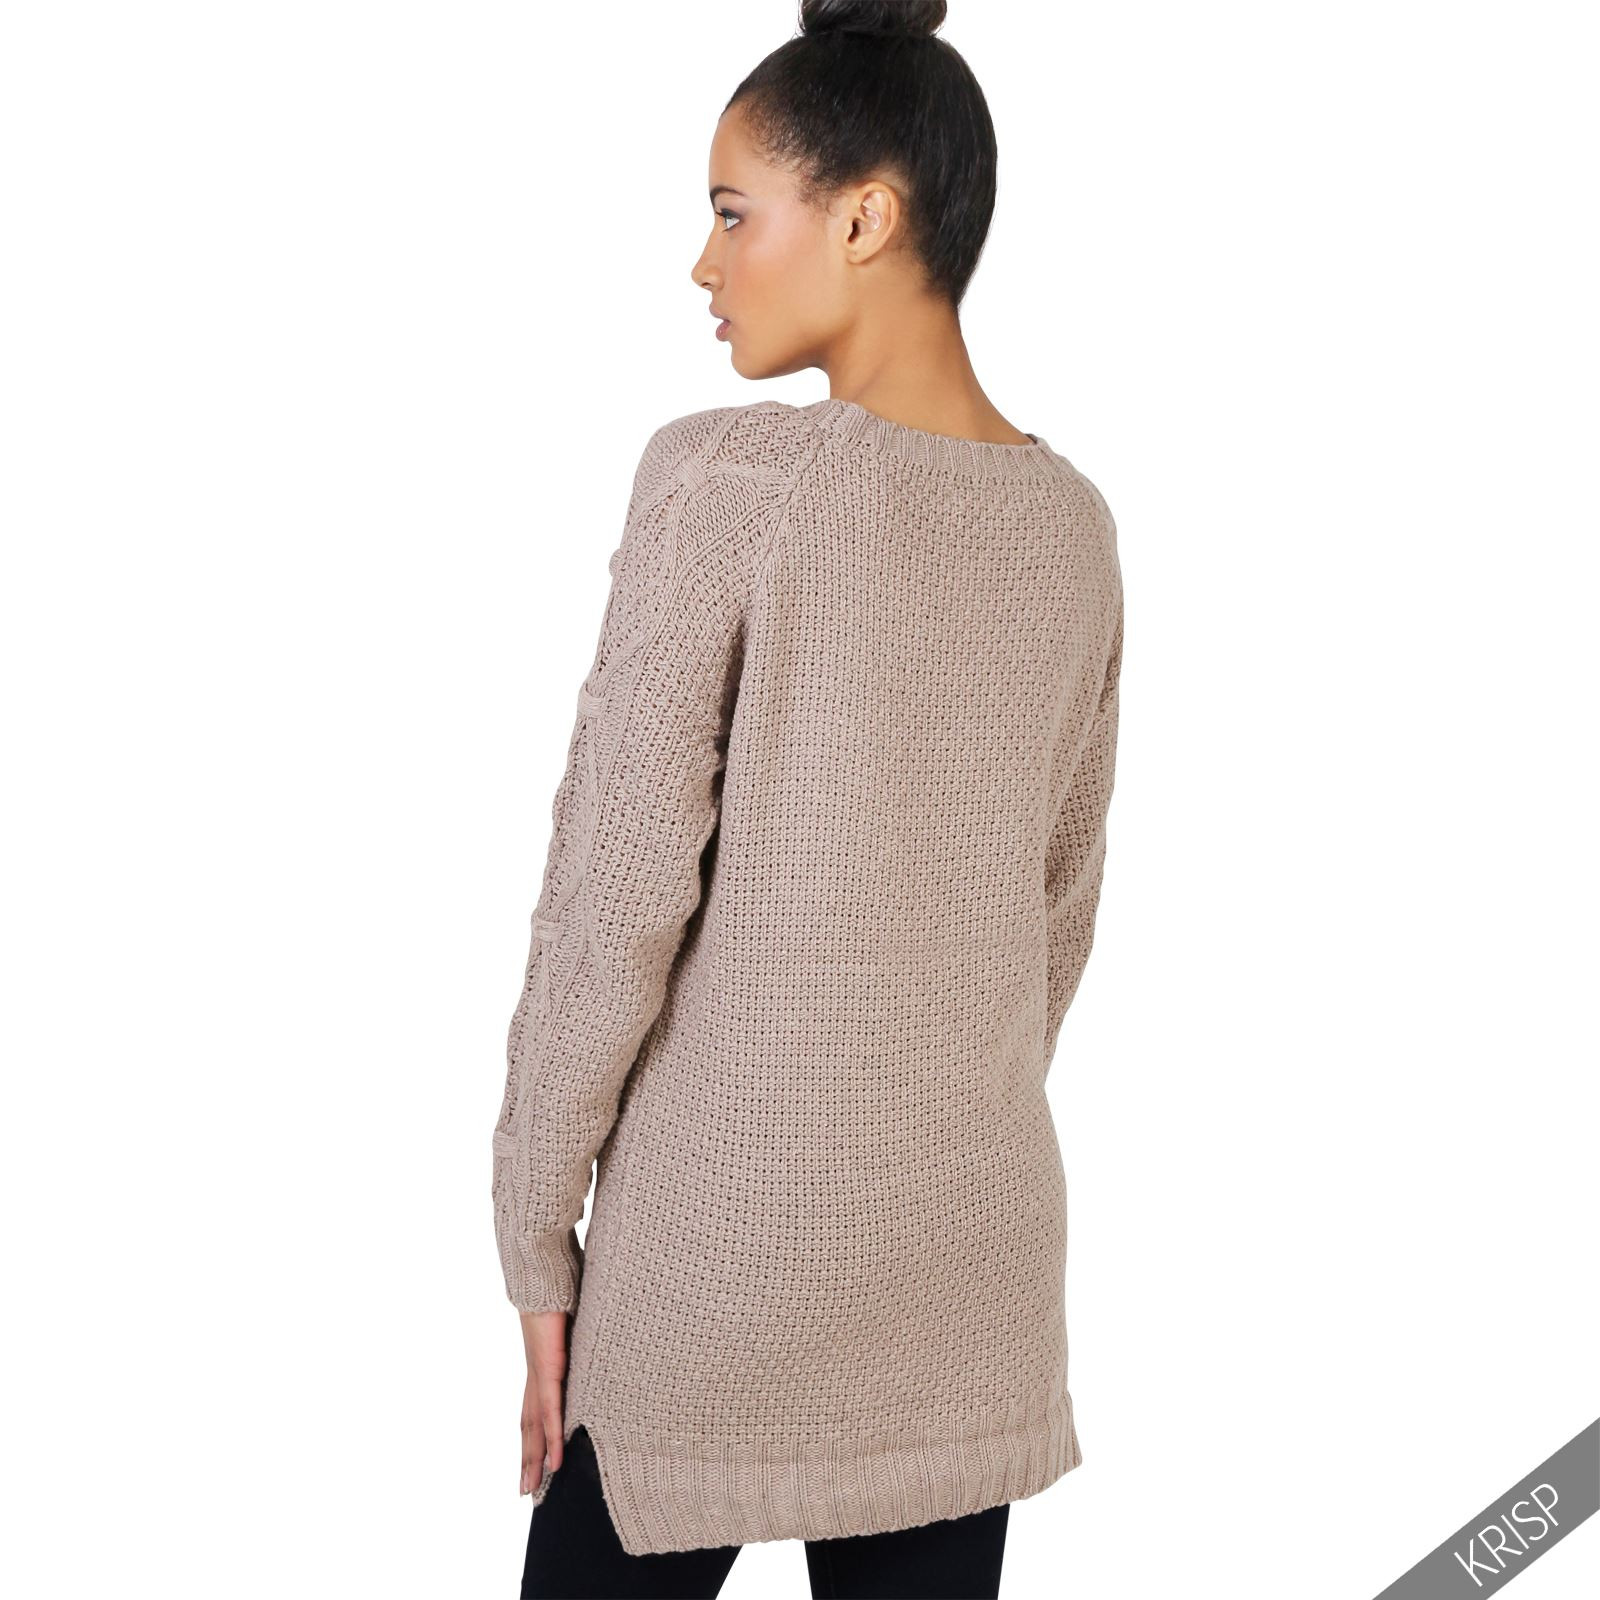 Womens Cable Knit Sweater Best Of Womens Chunky Cable Knit Baggy Long Winter Jumper La S Of Innovative 44 Pics Womens Cable Knit Sweater